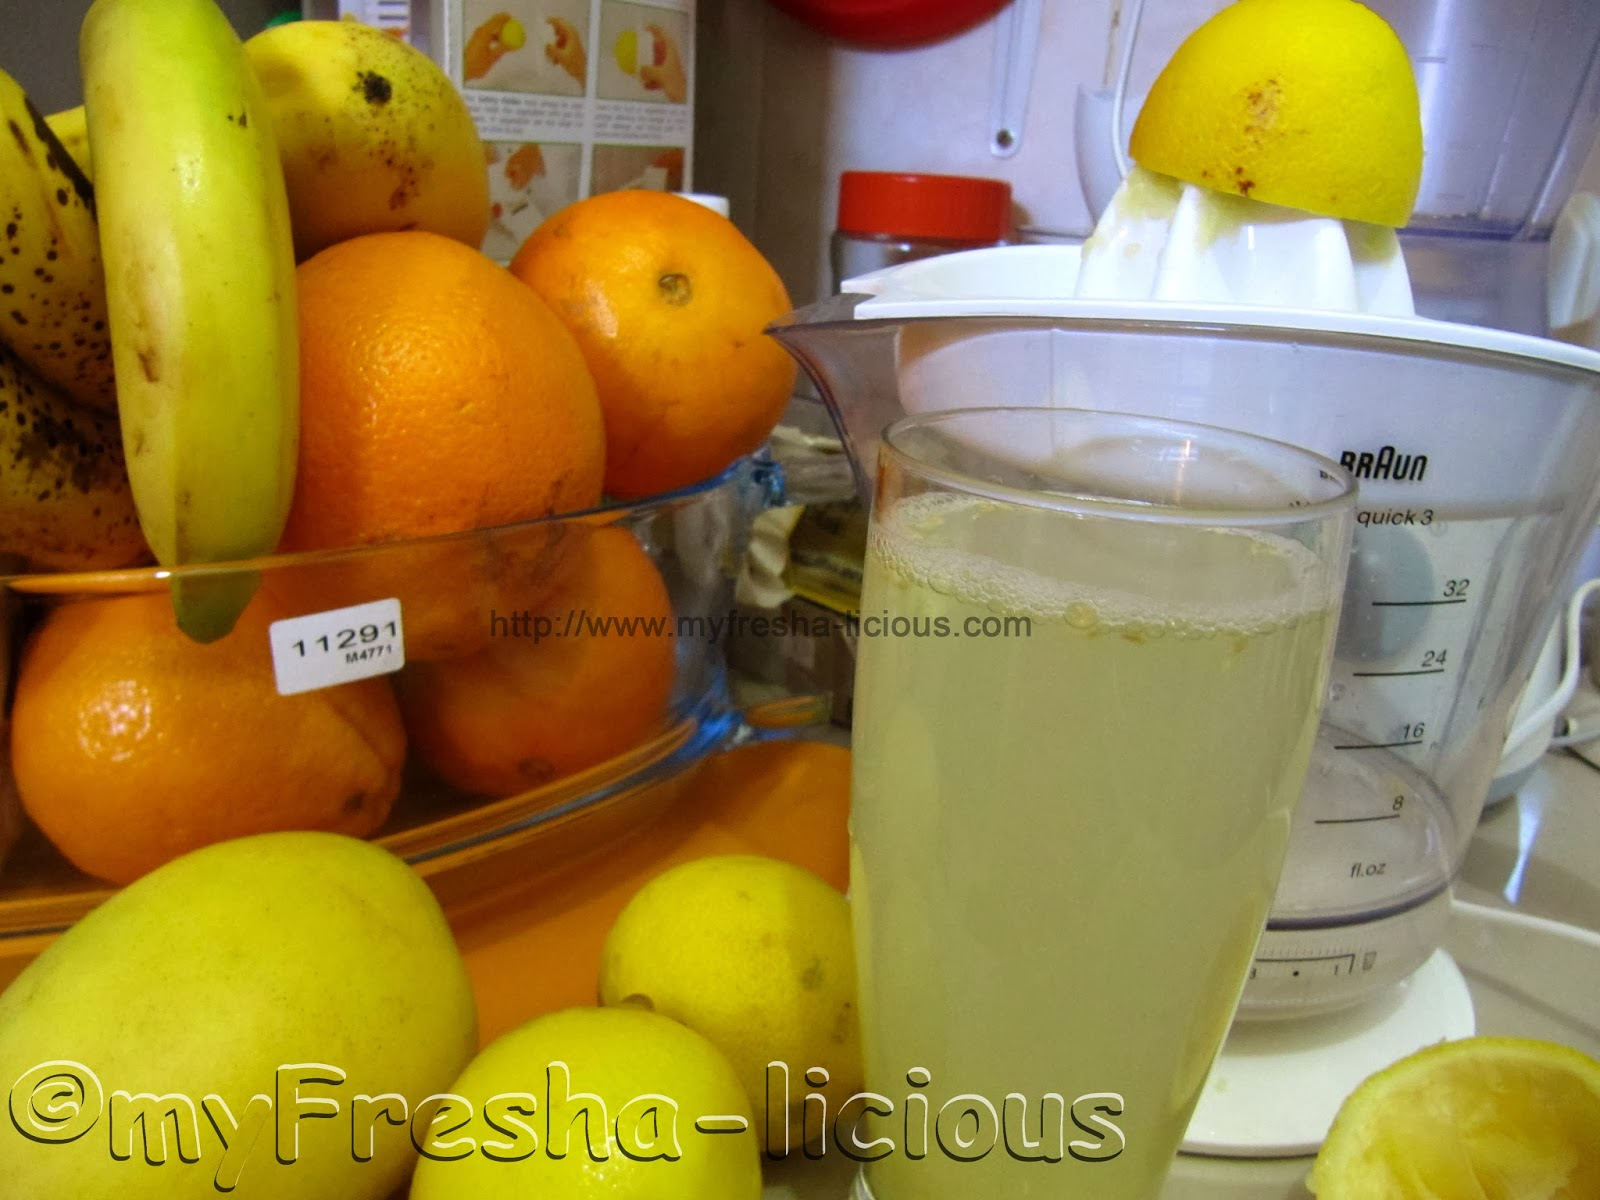 myFresha-licious: Lemon and Apple Cider Vinegar Juice